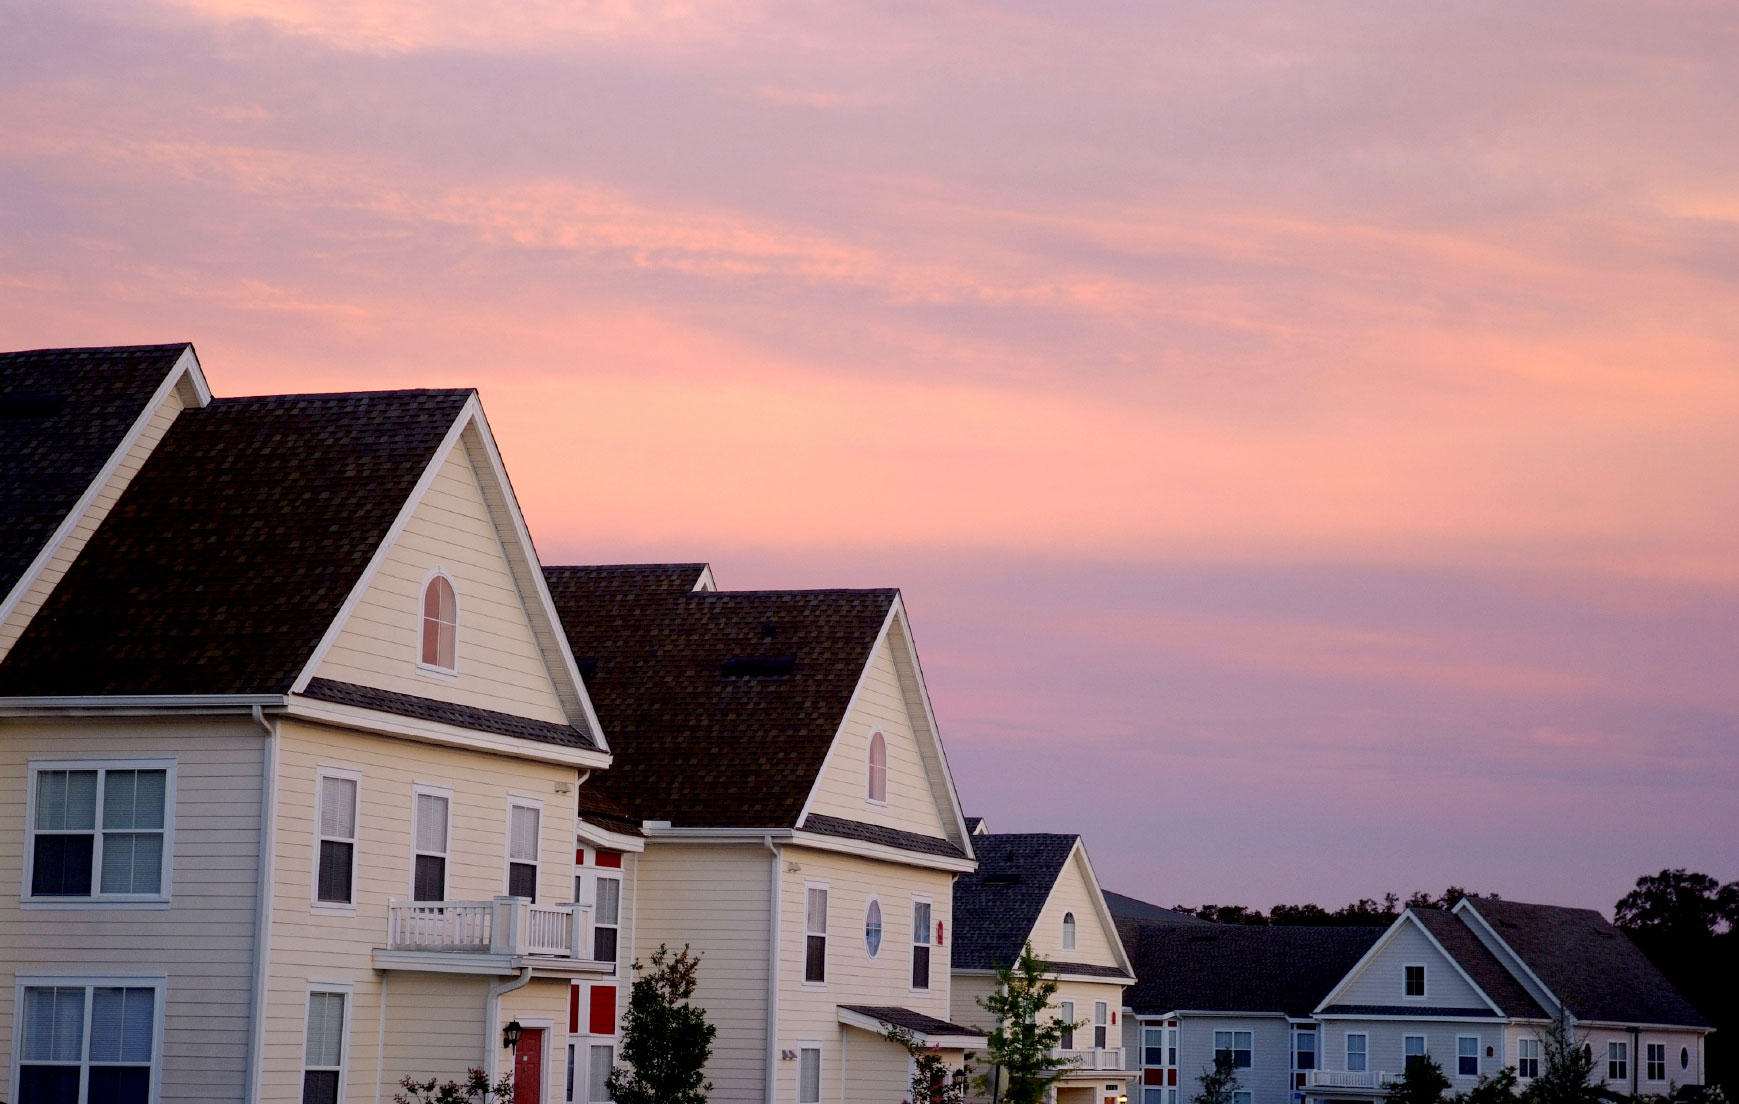 row of townhomes at sunset